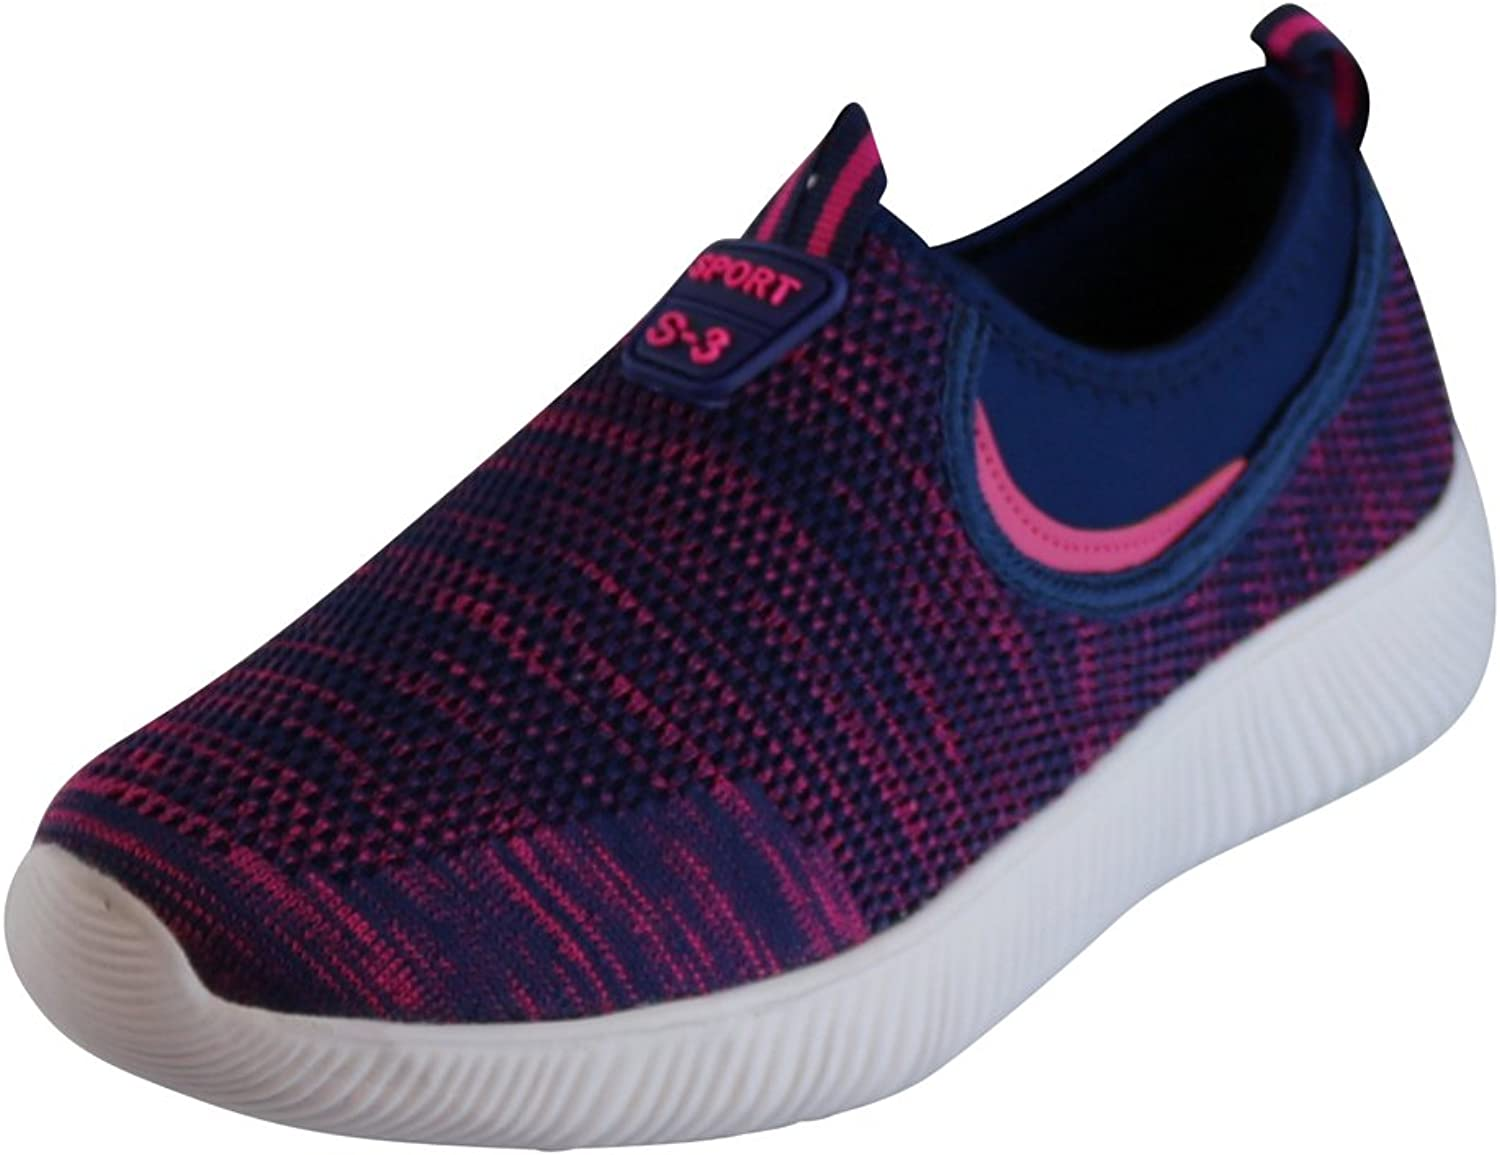 Cambridge Select Women's Closed Toe Stretch Breathable Lightweight Mesh Casual Sport Slip-On Fashion Sneaker